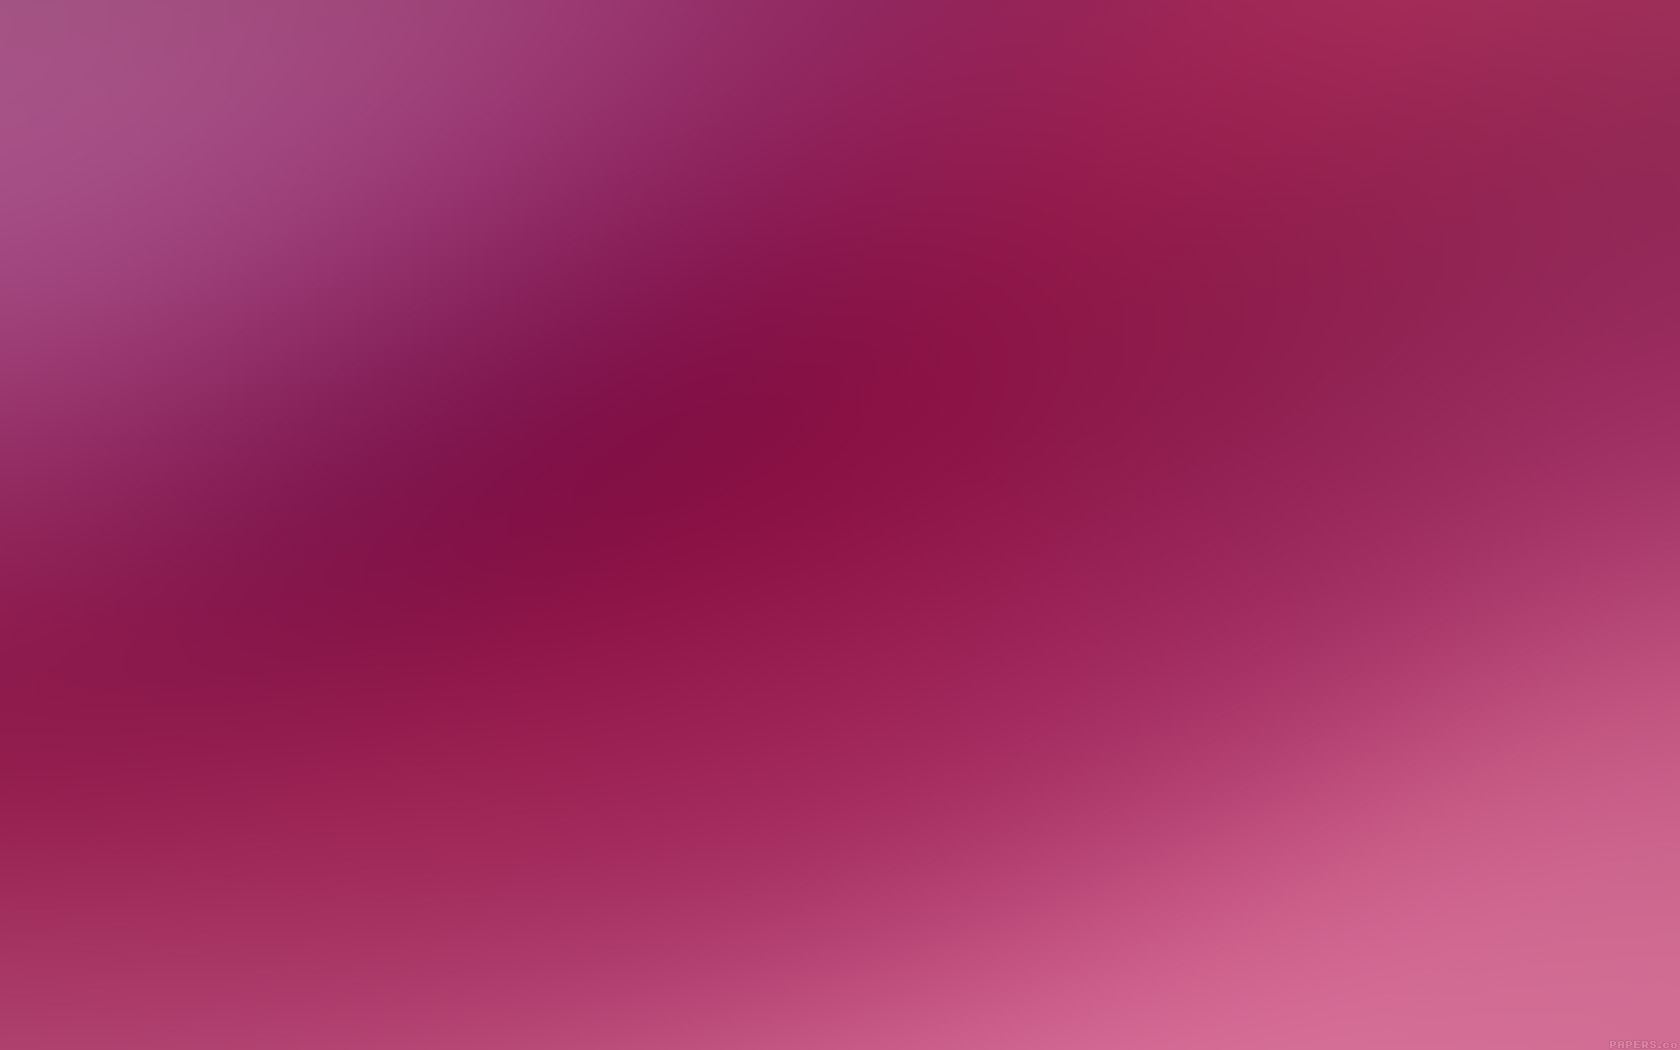 se95-light-hot-pink-red-gradation-blur - Papers.co